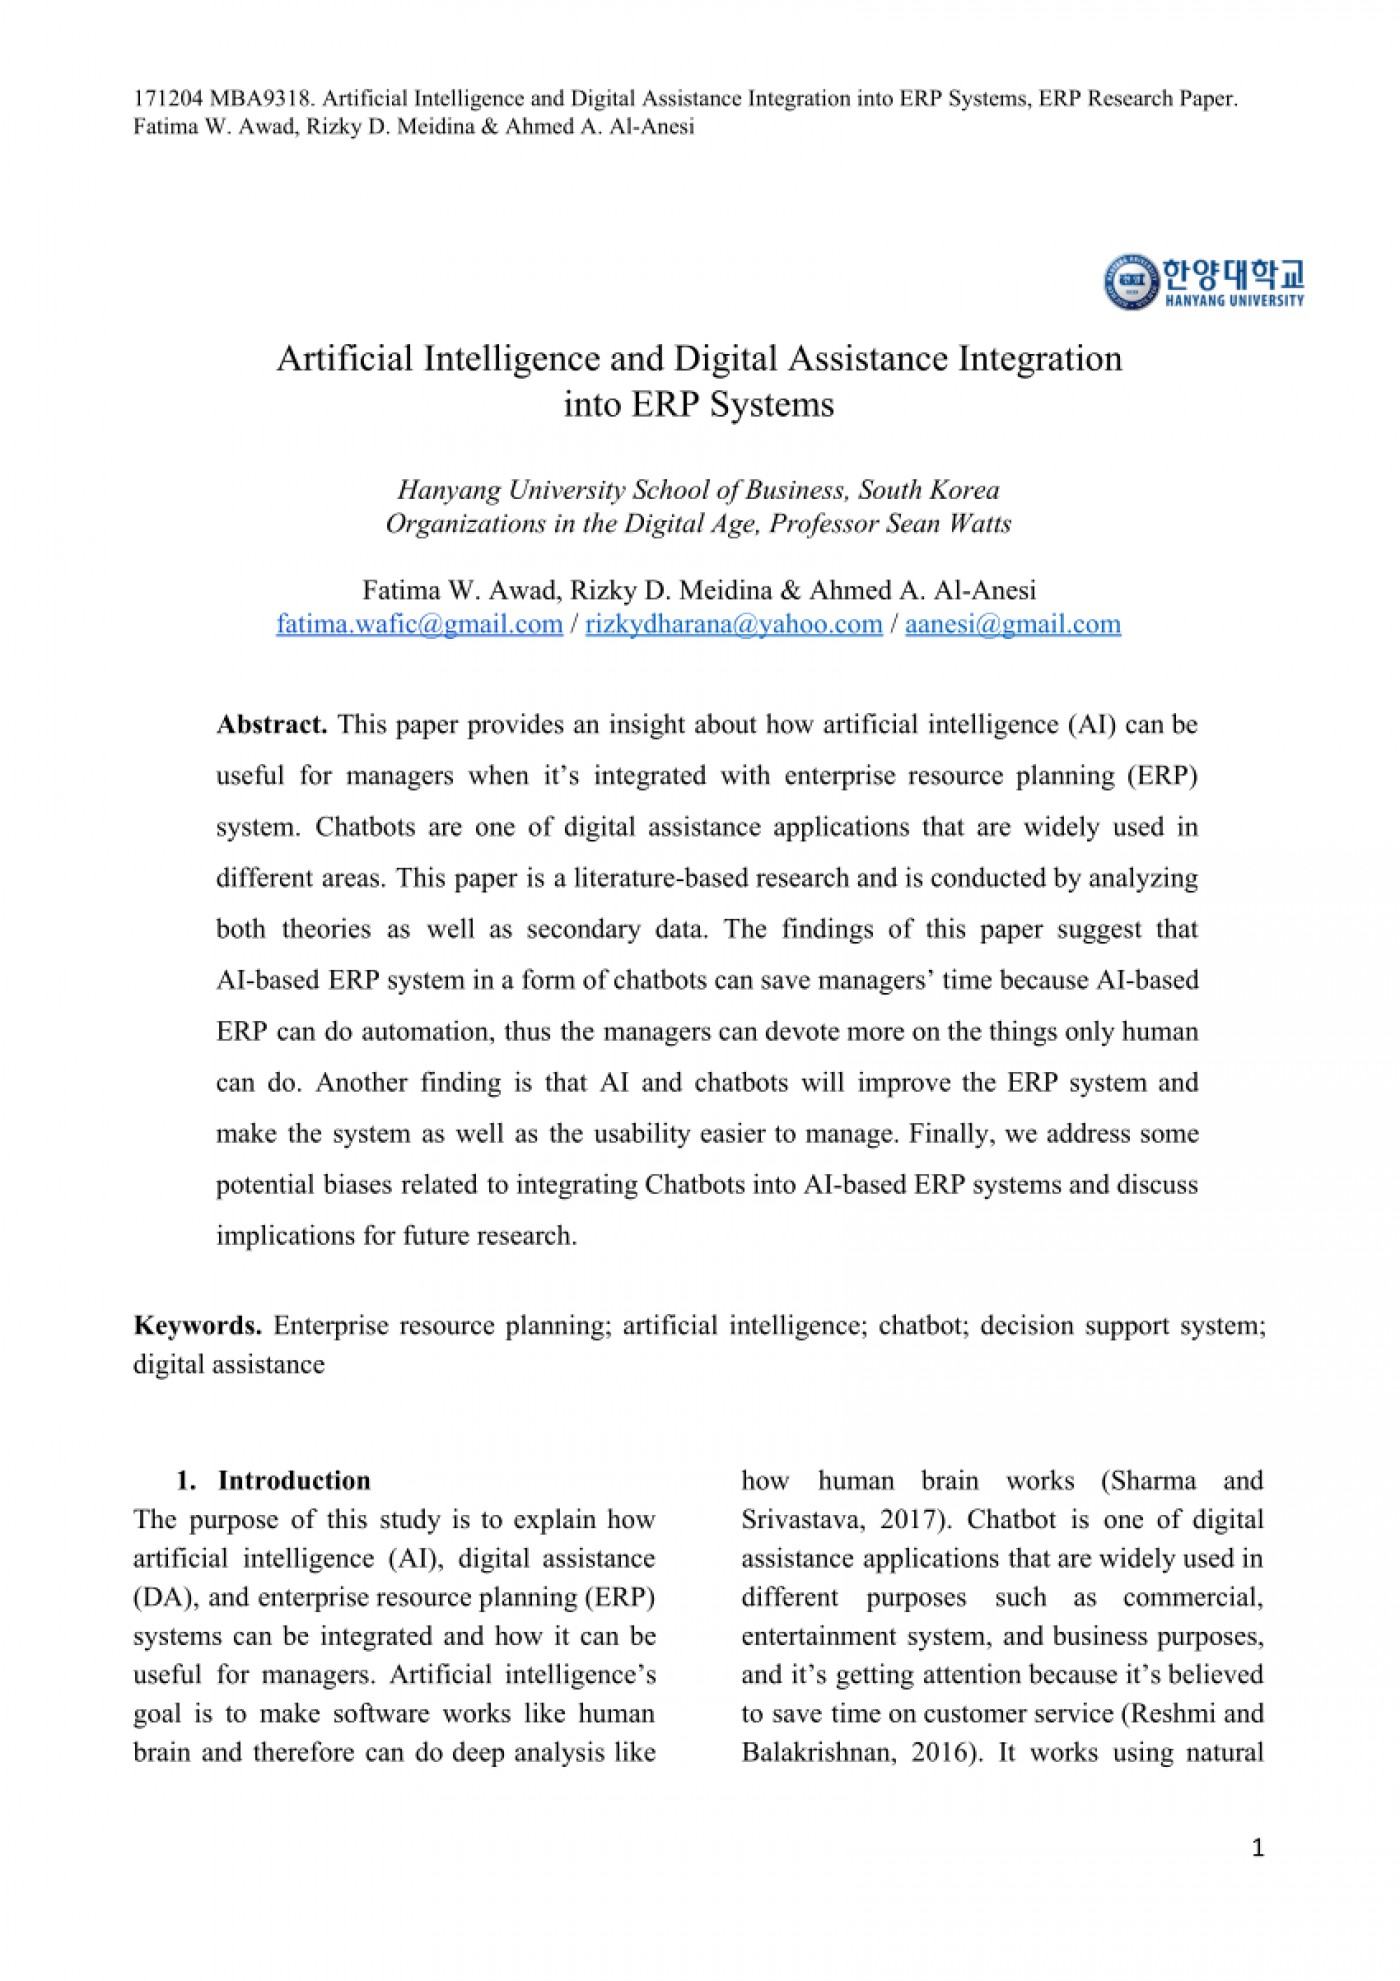 001 Research Paper Largepreview Artificial Intelligence Papers Remarkable Topics 2018 Pdf 1400